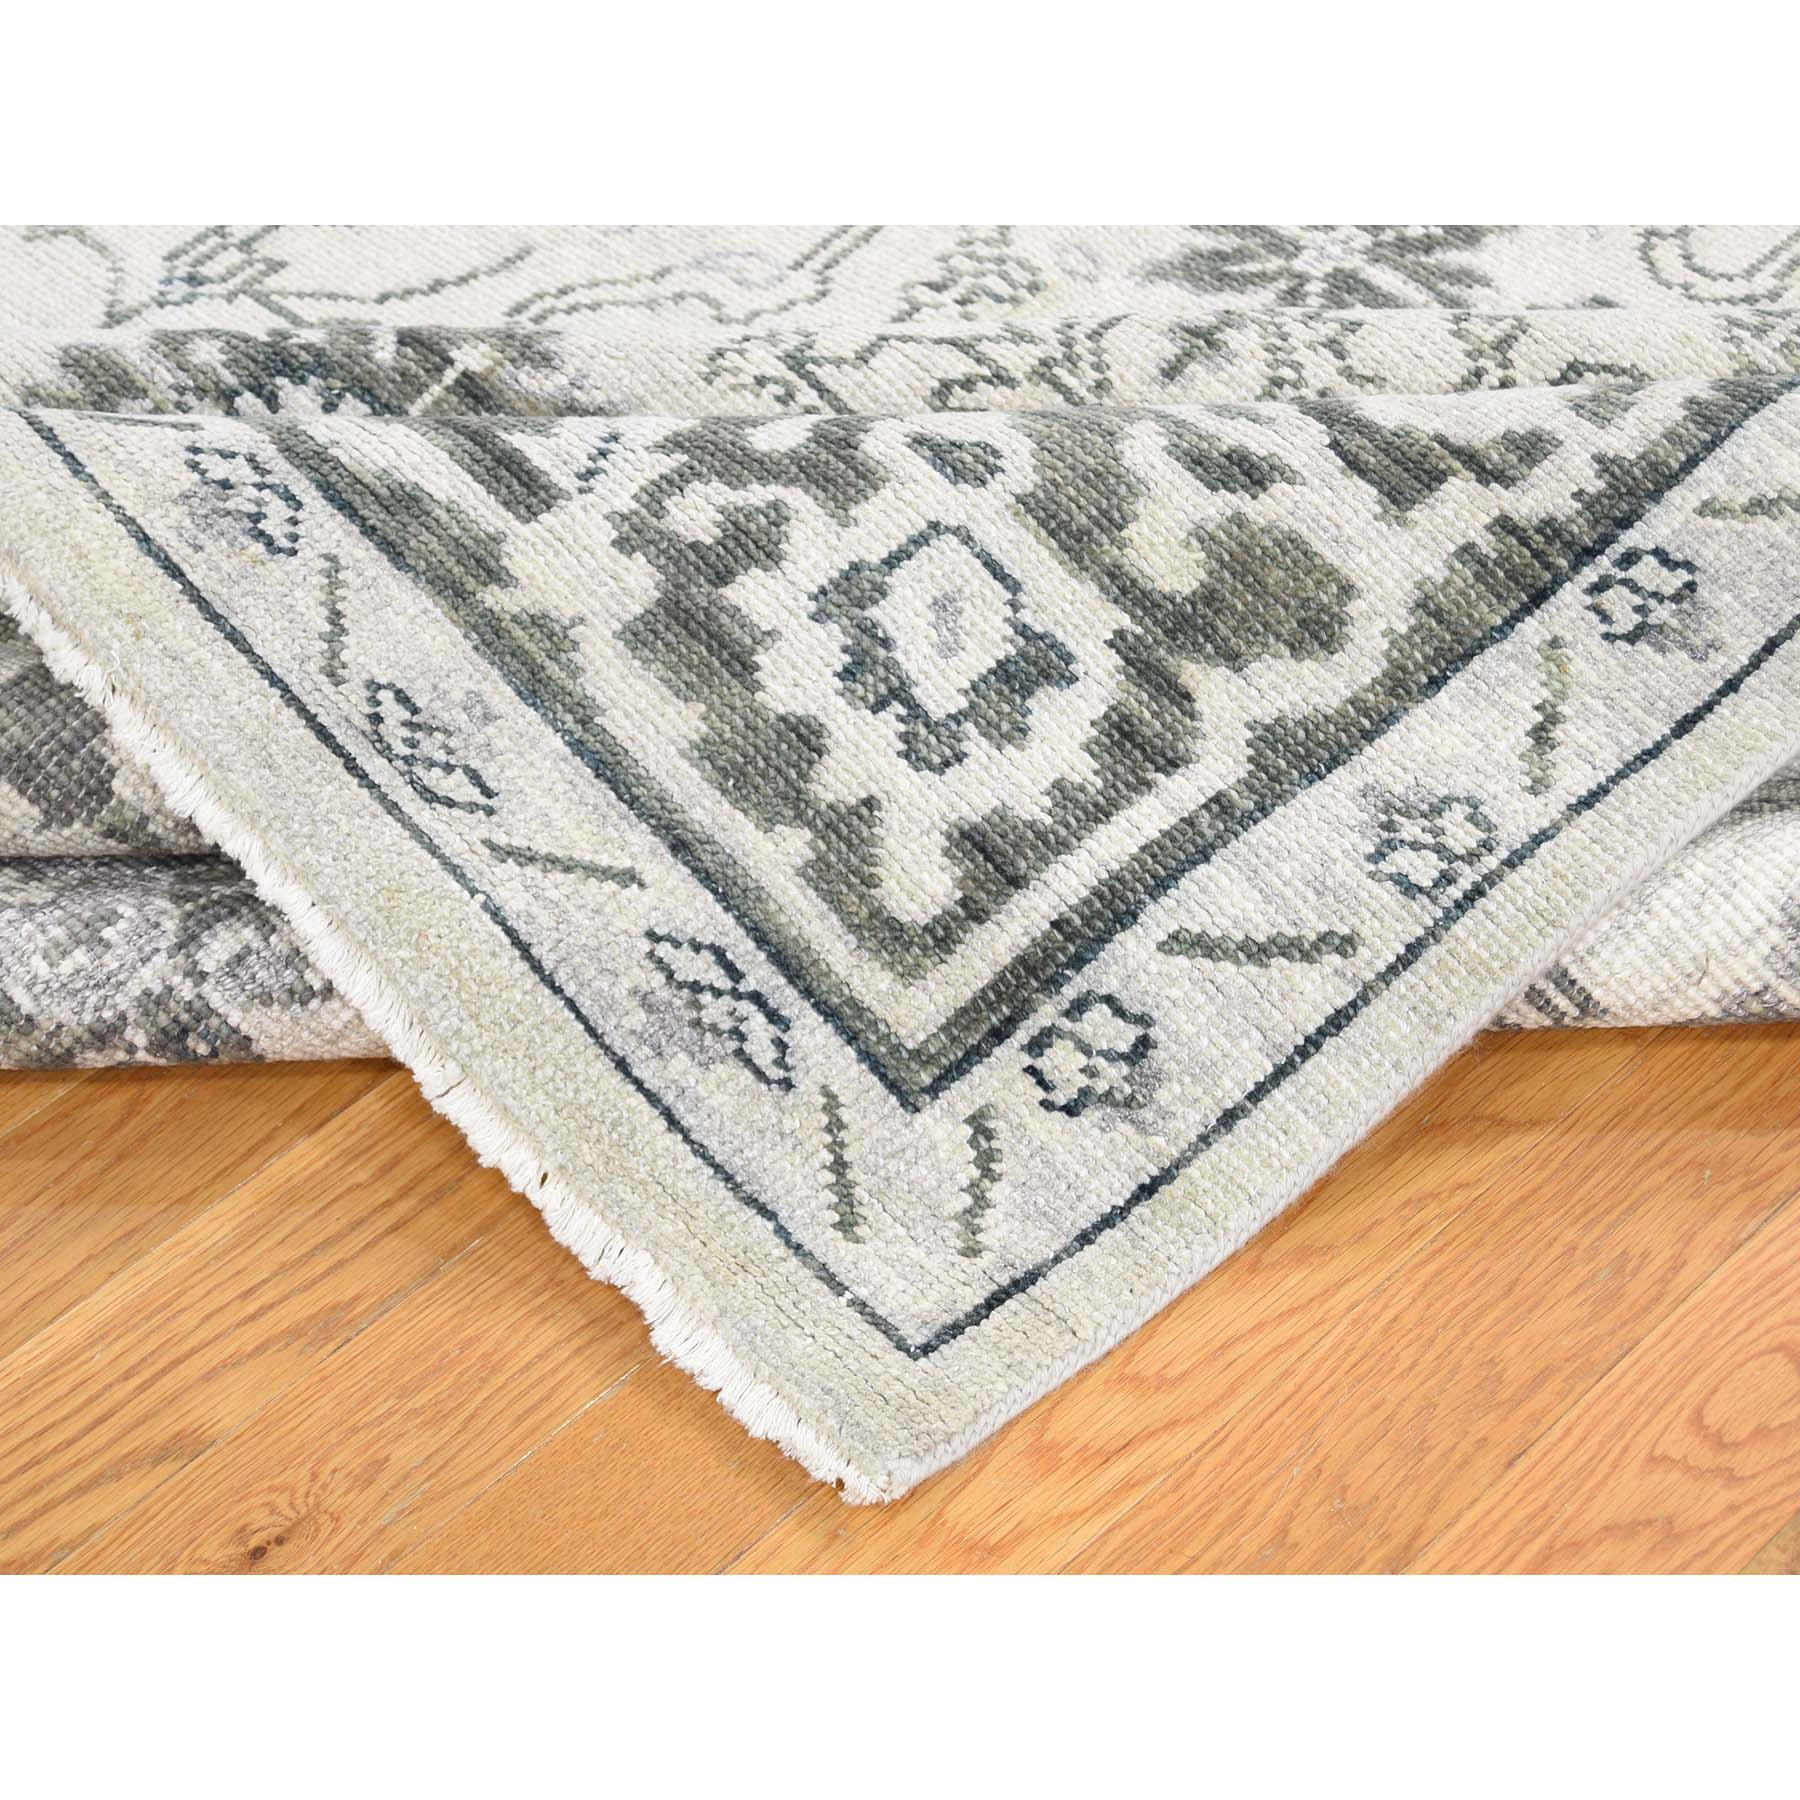 8-x10- Hand-Knotted Turkish Knot Oushak Pure Wool Oriental Rug